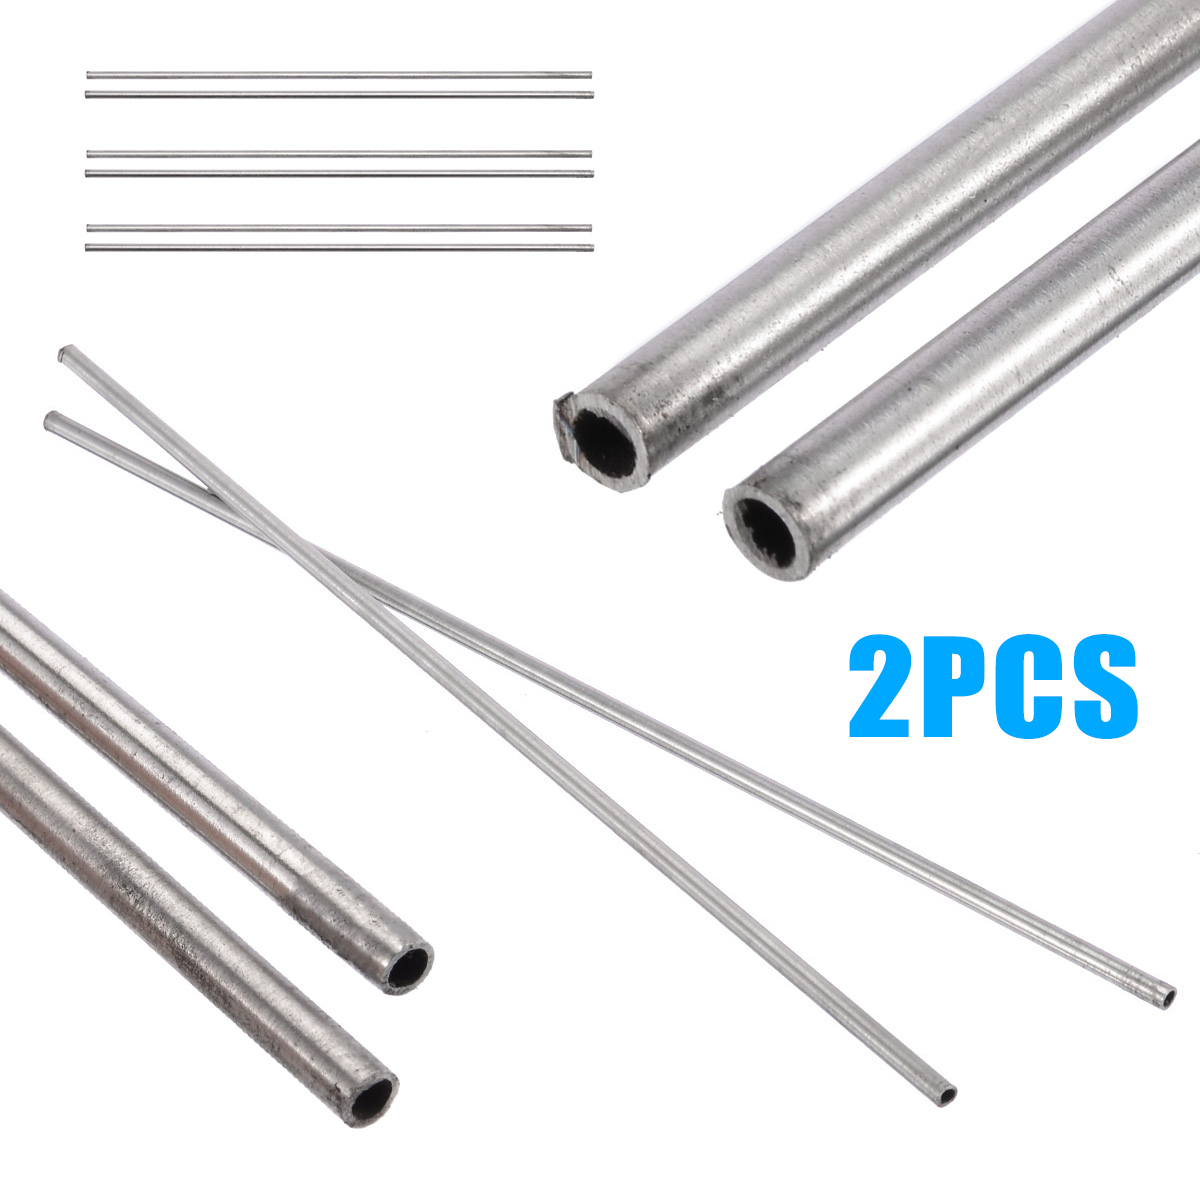 304 Stainless Steel Capillary Tube OD 4mm x 3mm ID Length 250mm Metal Tool NM